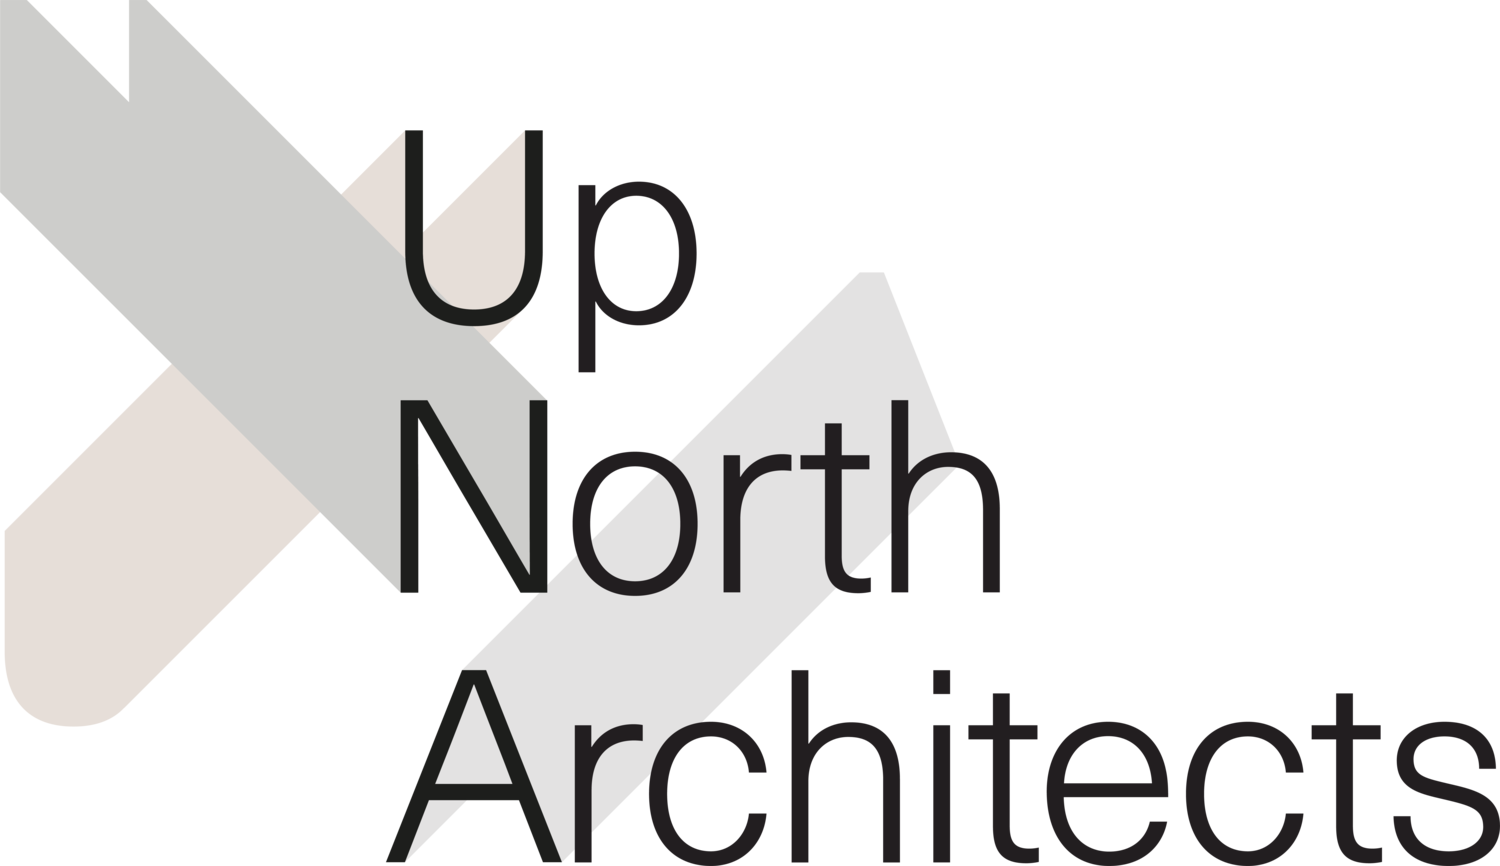 Up North Architects